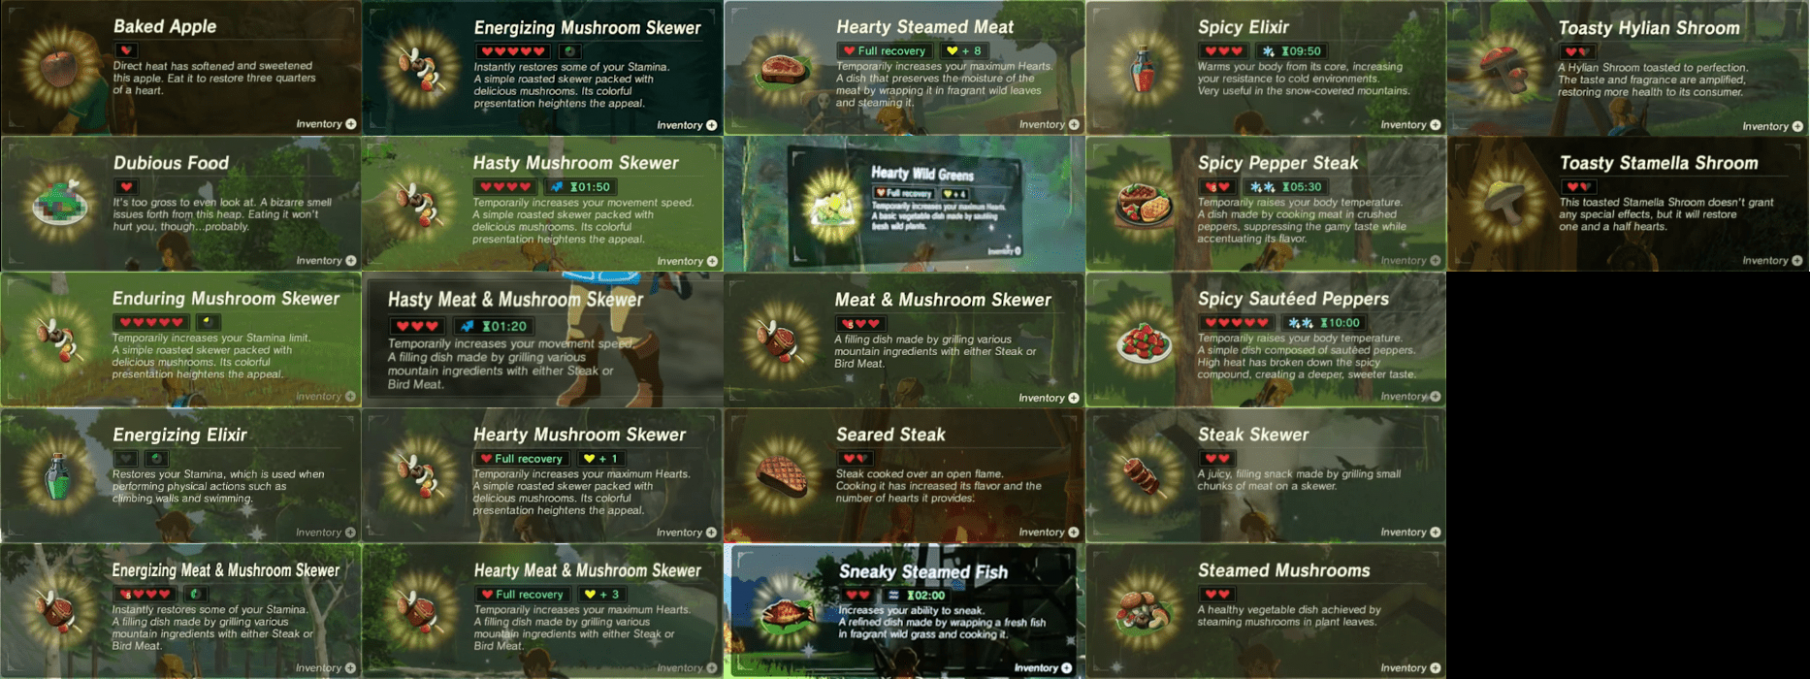 Kochrezepte: Rezepte Zelda Botw - Cooking Recipes Botw